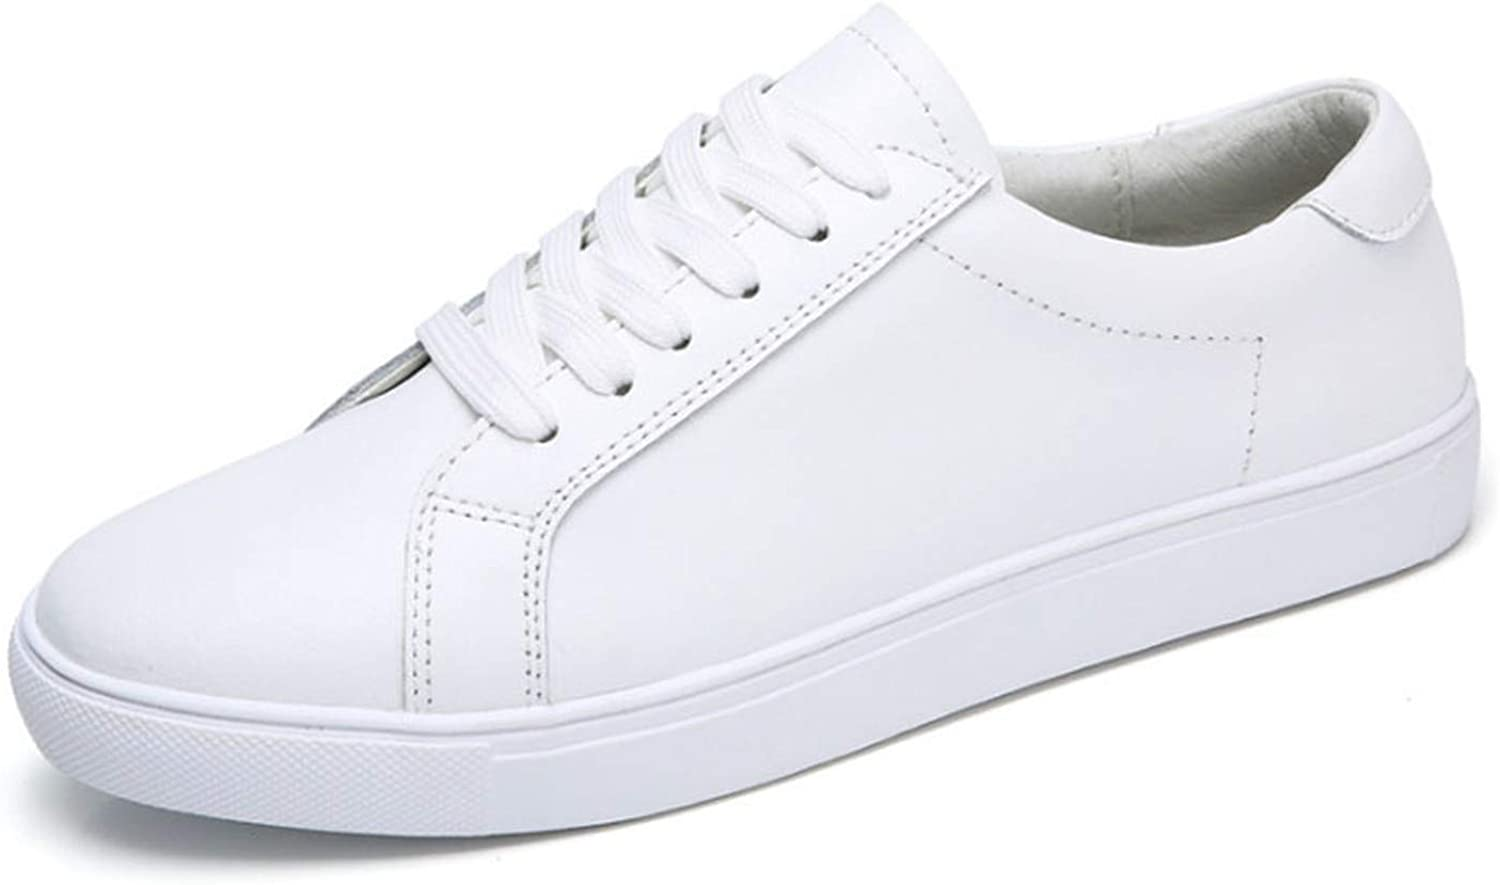 I Need-You Genuine Leather Sneakers Women White shoes 2018 Spring Platform shoes shoes women Lace-Up Tenis Feminino Casual Flats F7